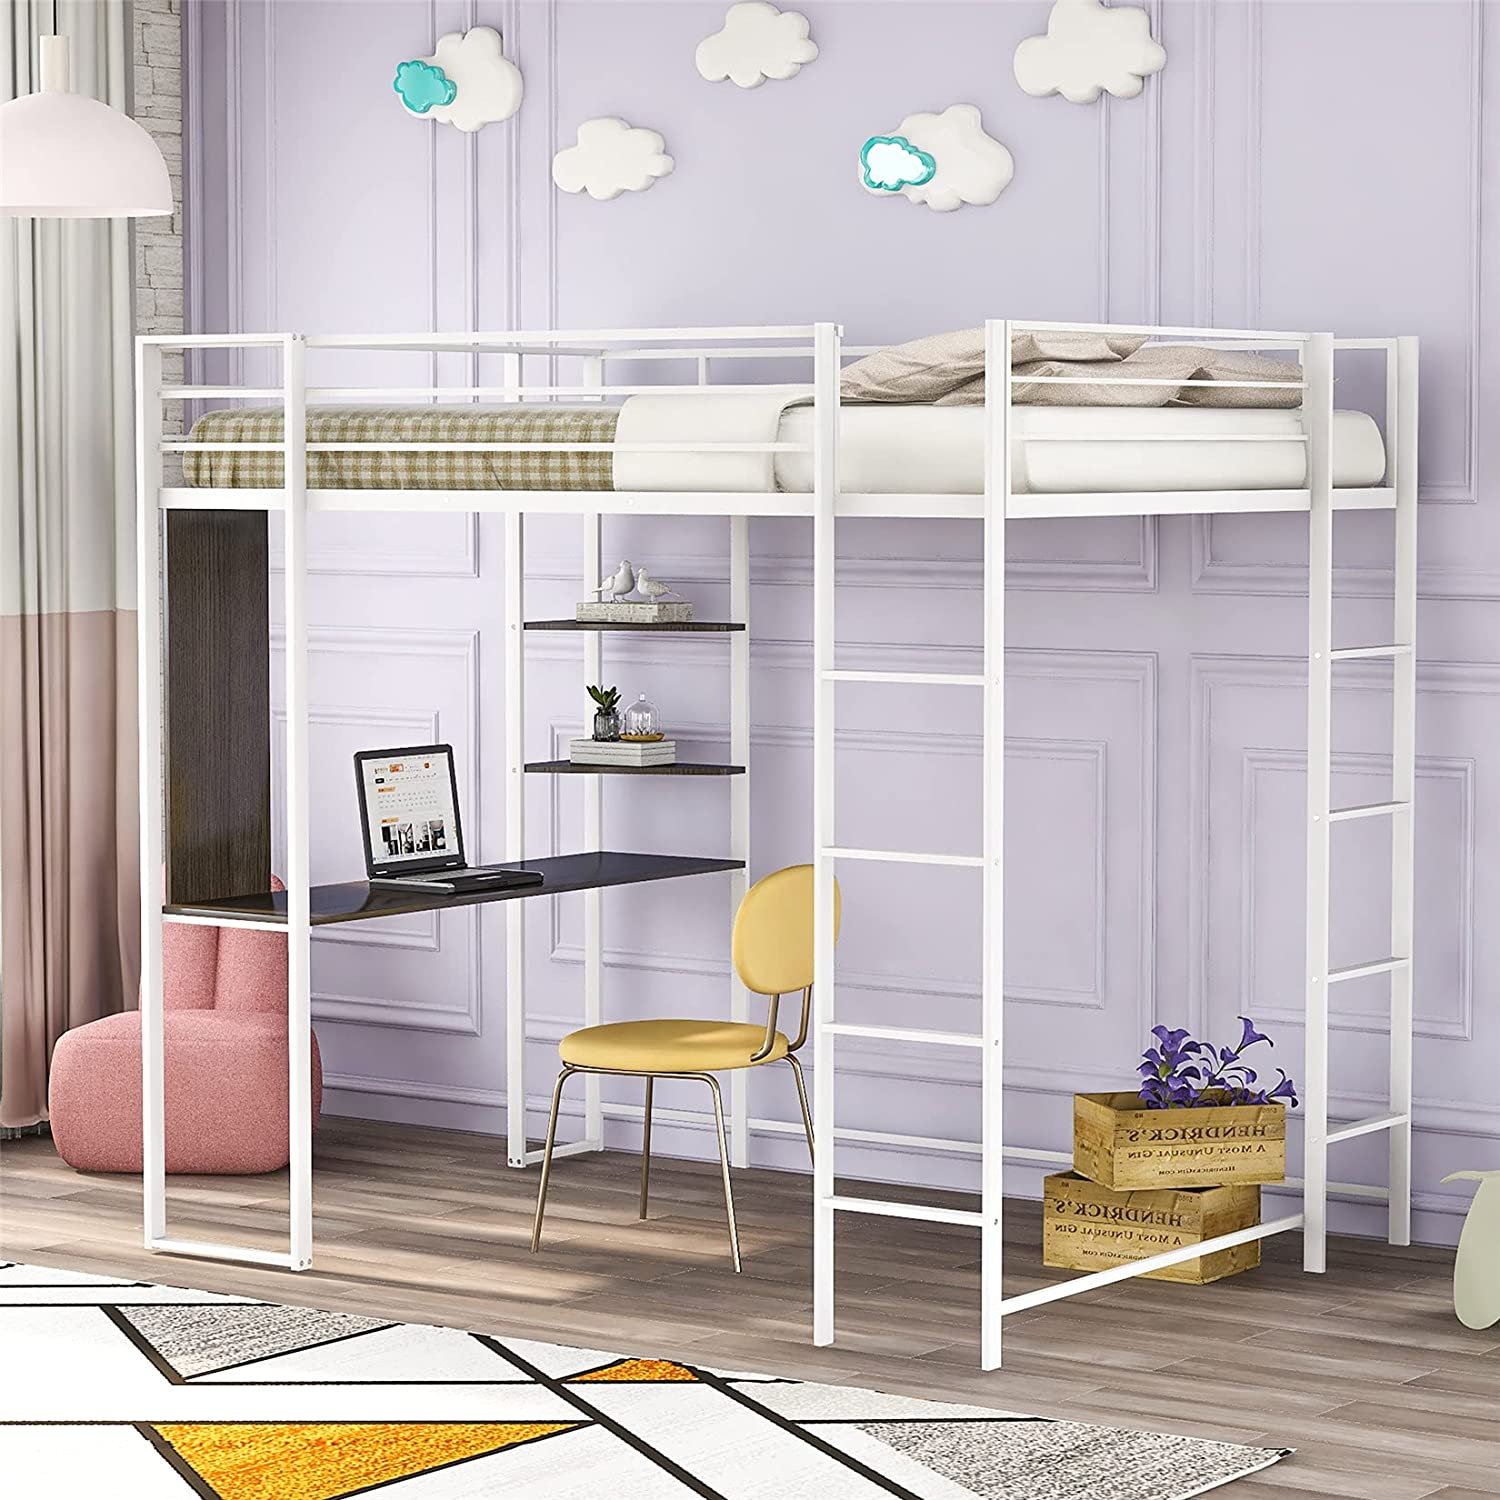 Metal Loft Bed Studio Loft Bunk Bed Over Desk and Bookcase with 2 Ladders,Twin Loft Bed for Dorm, Boys & Girls Teens Kids,White